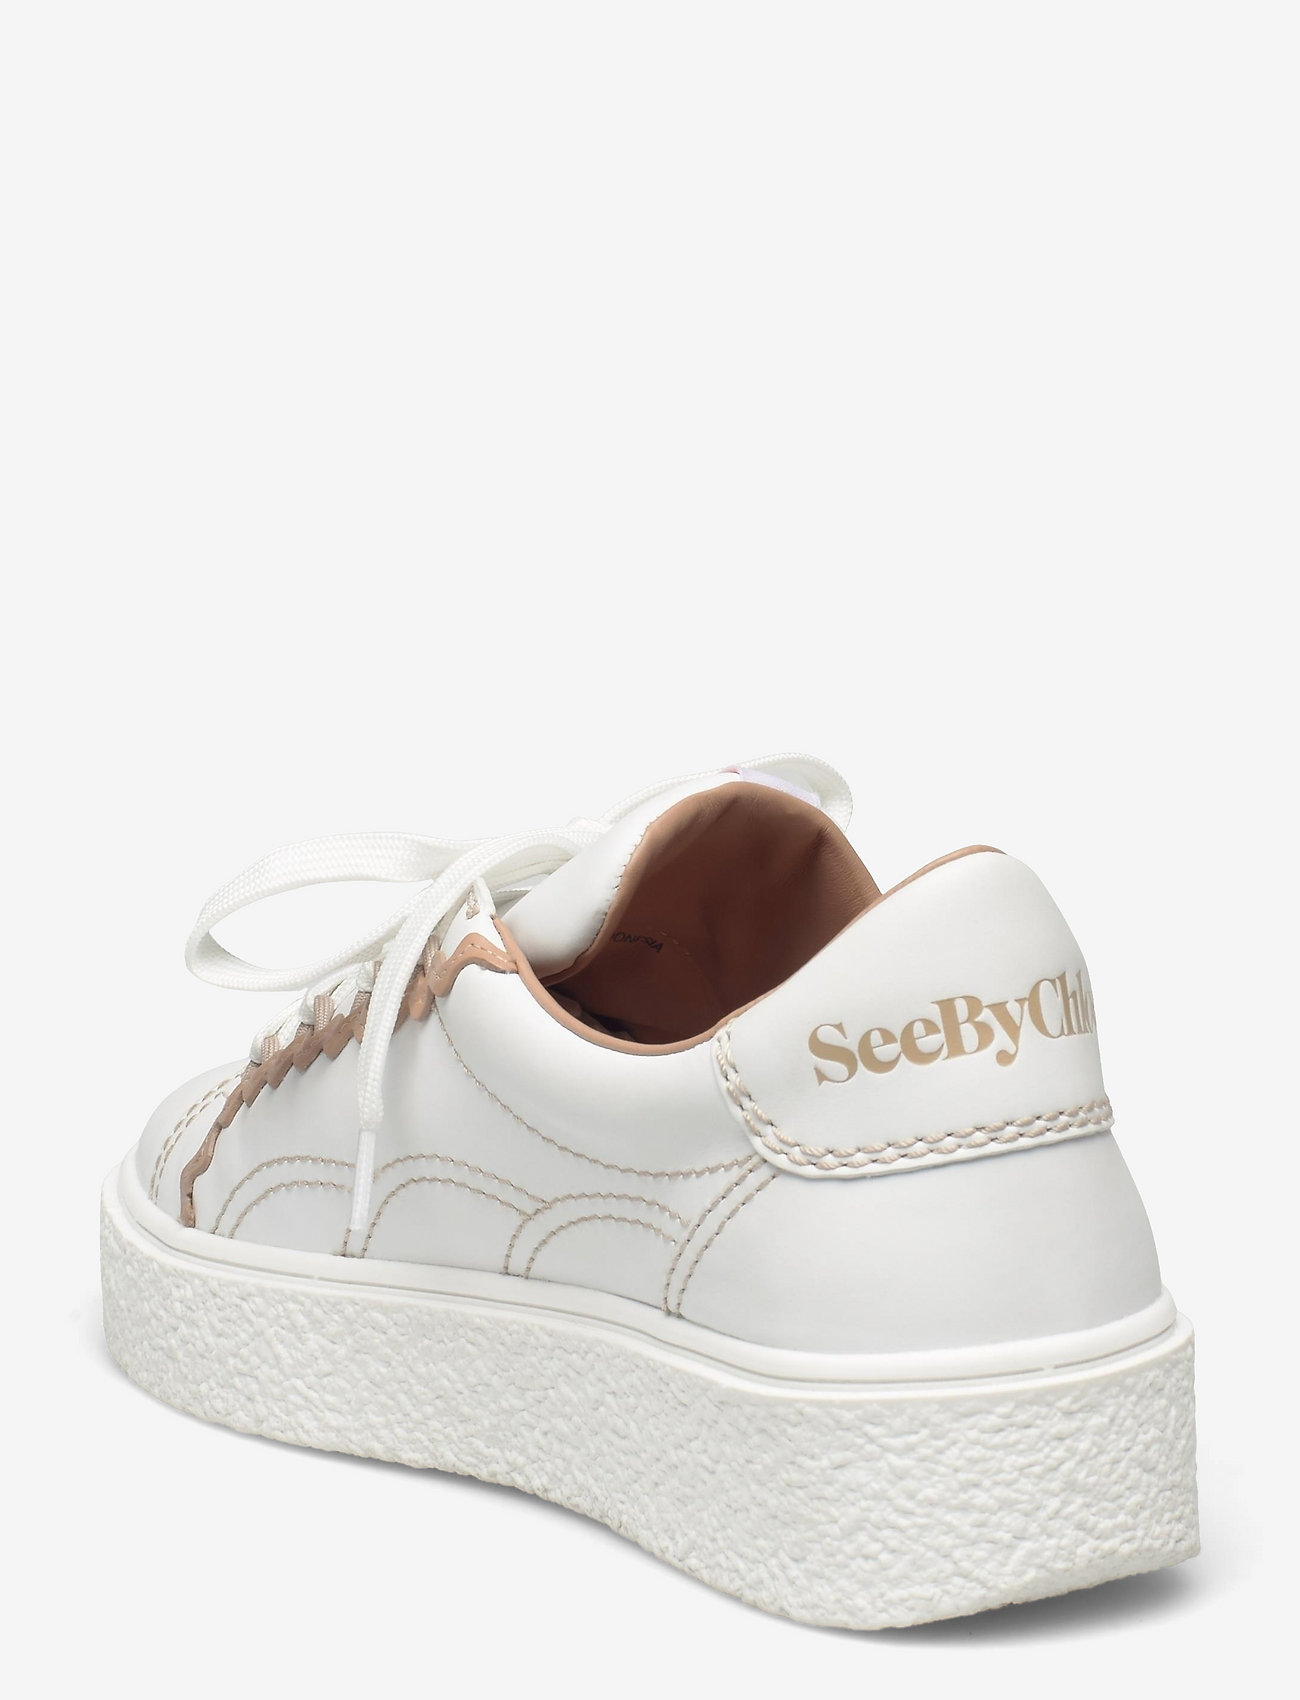 See by Chloé - LOW-TOP SNEAKERS - lage sneakers - white - nude - 2